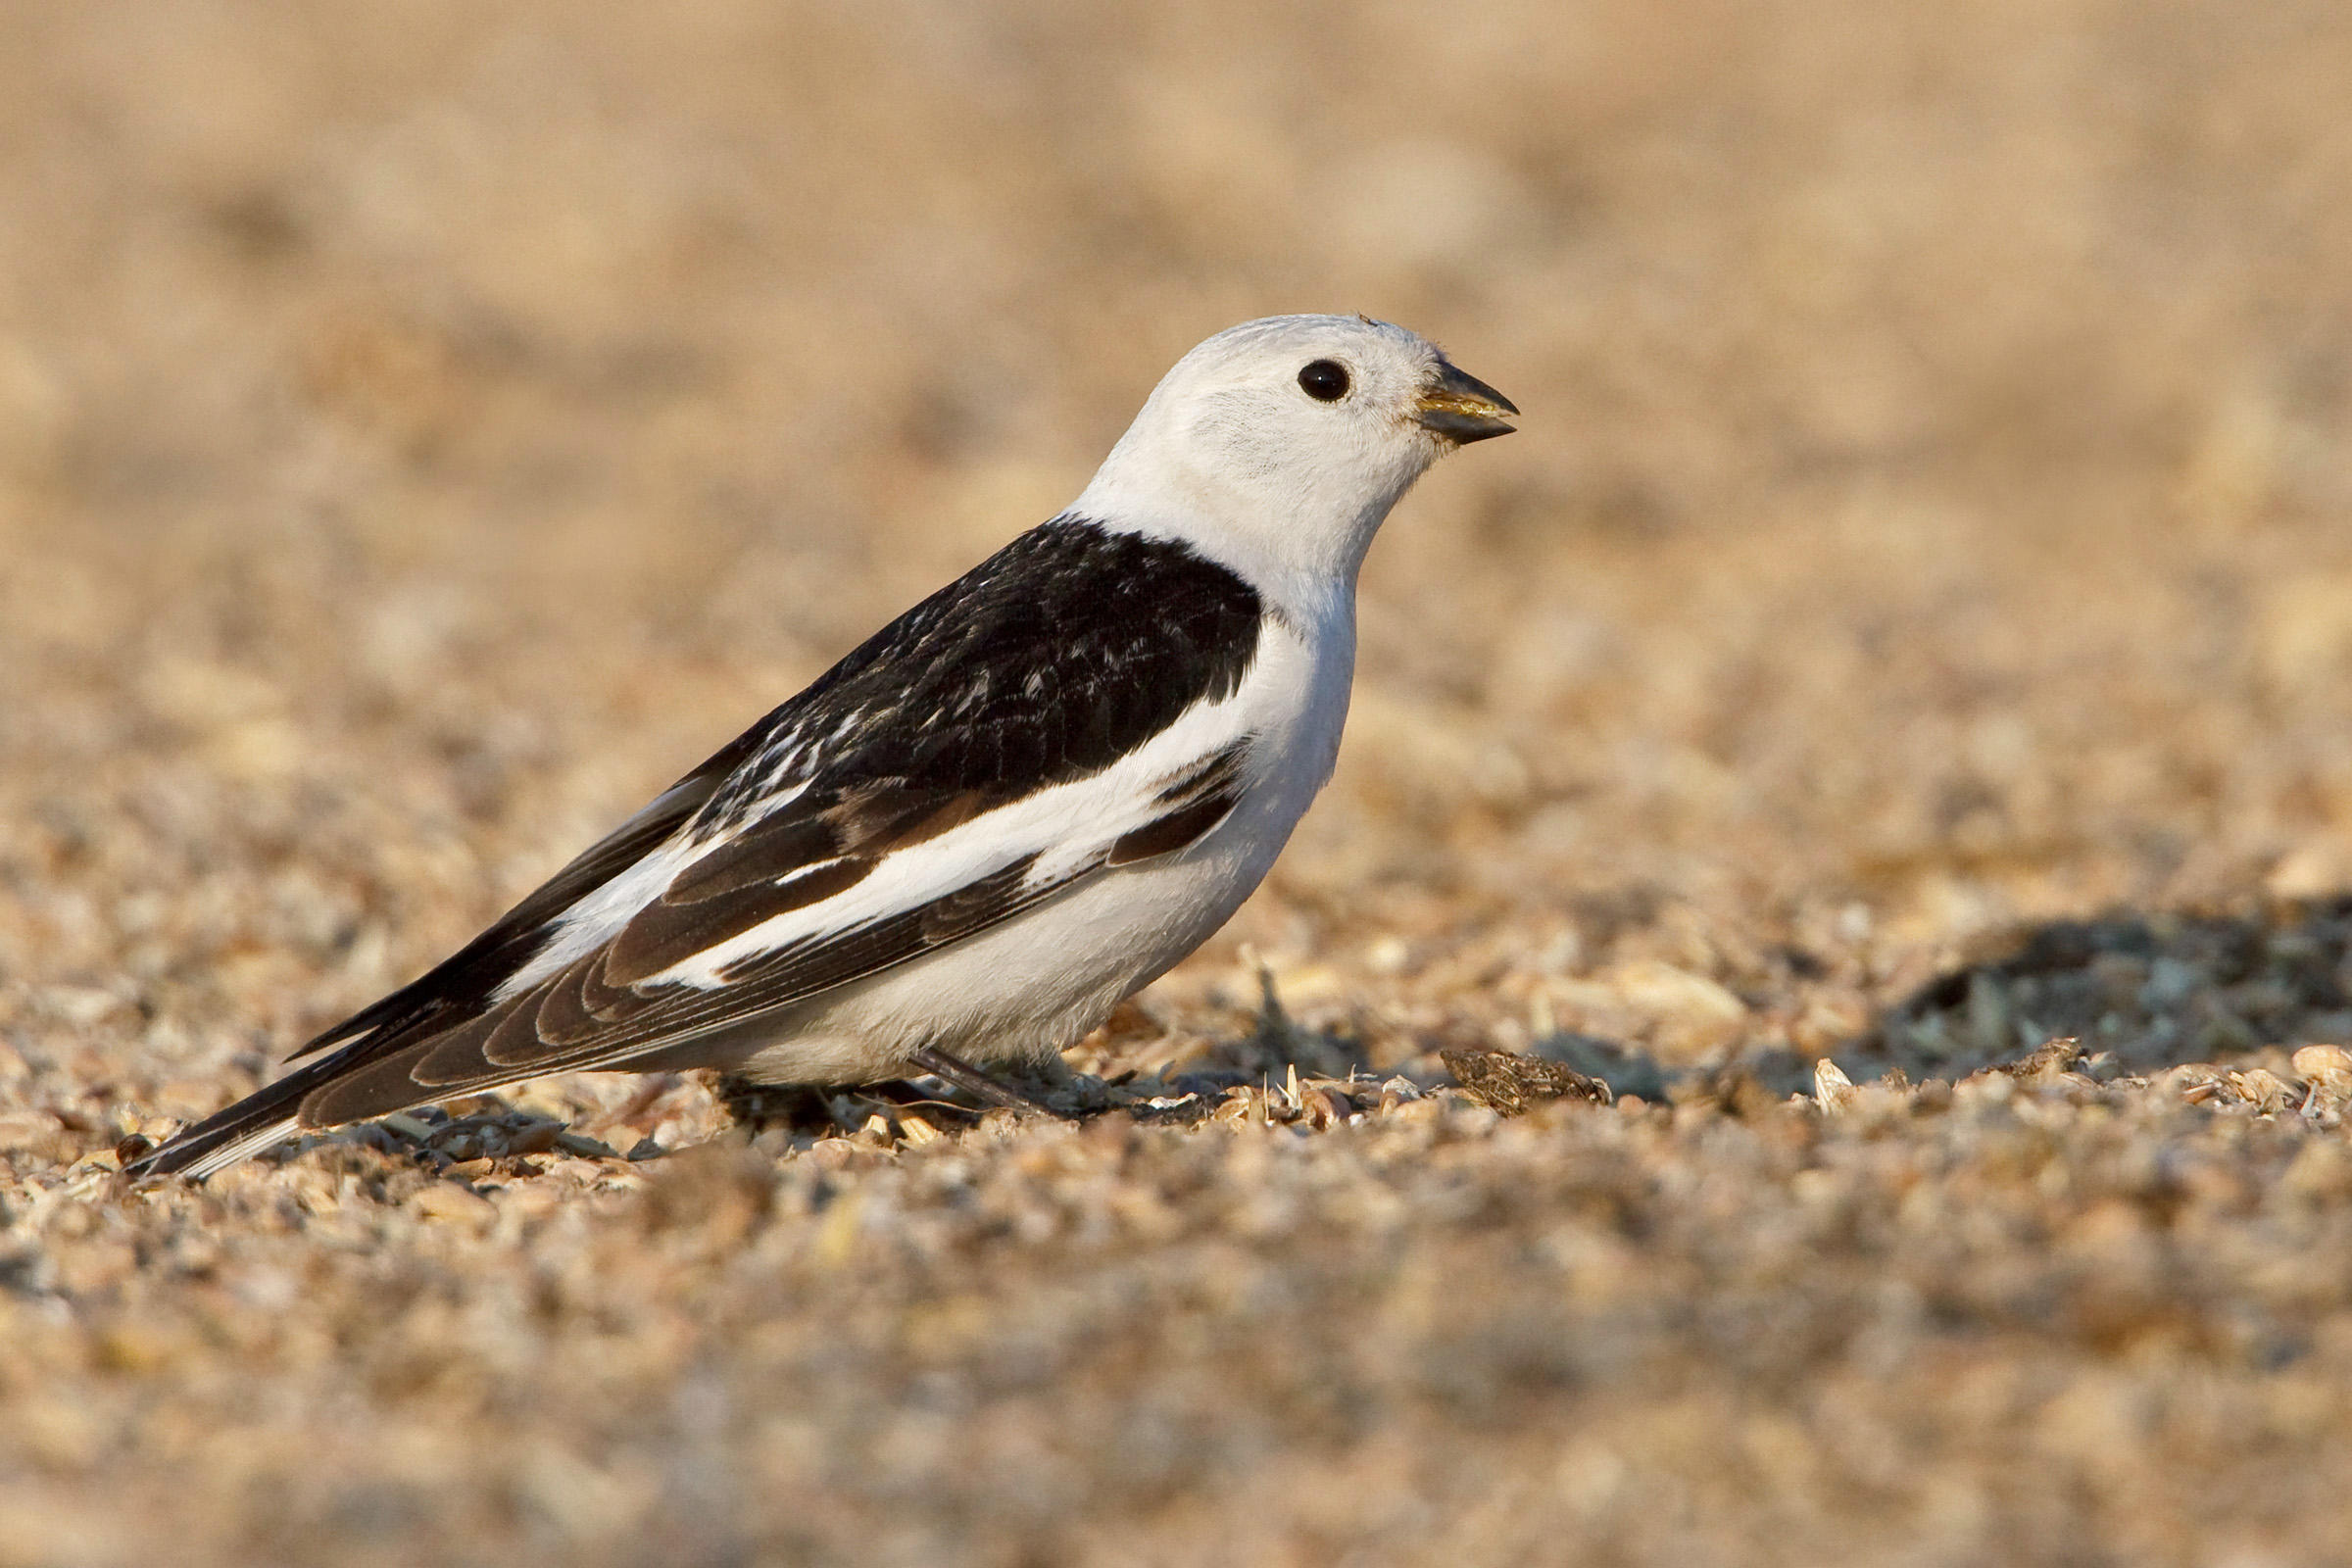 Snow Bunting clipart #4, Download drawings